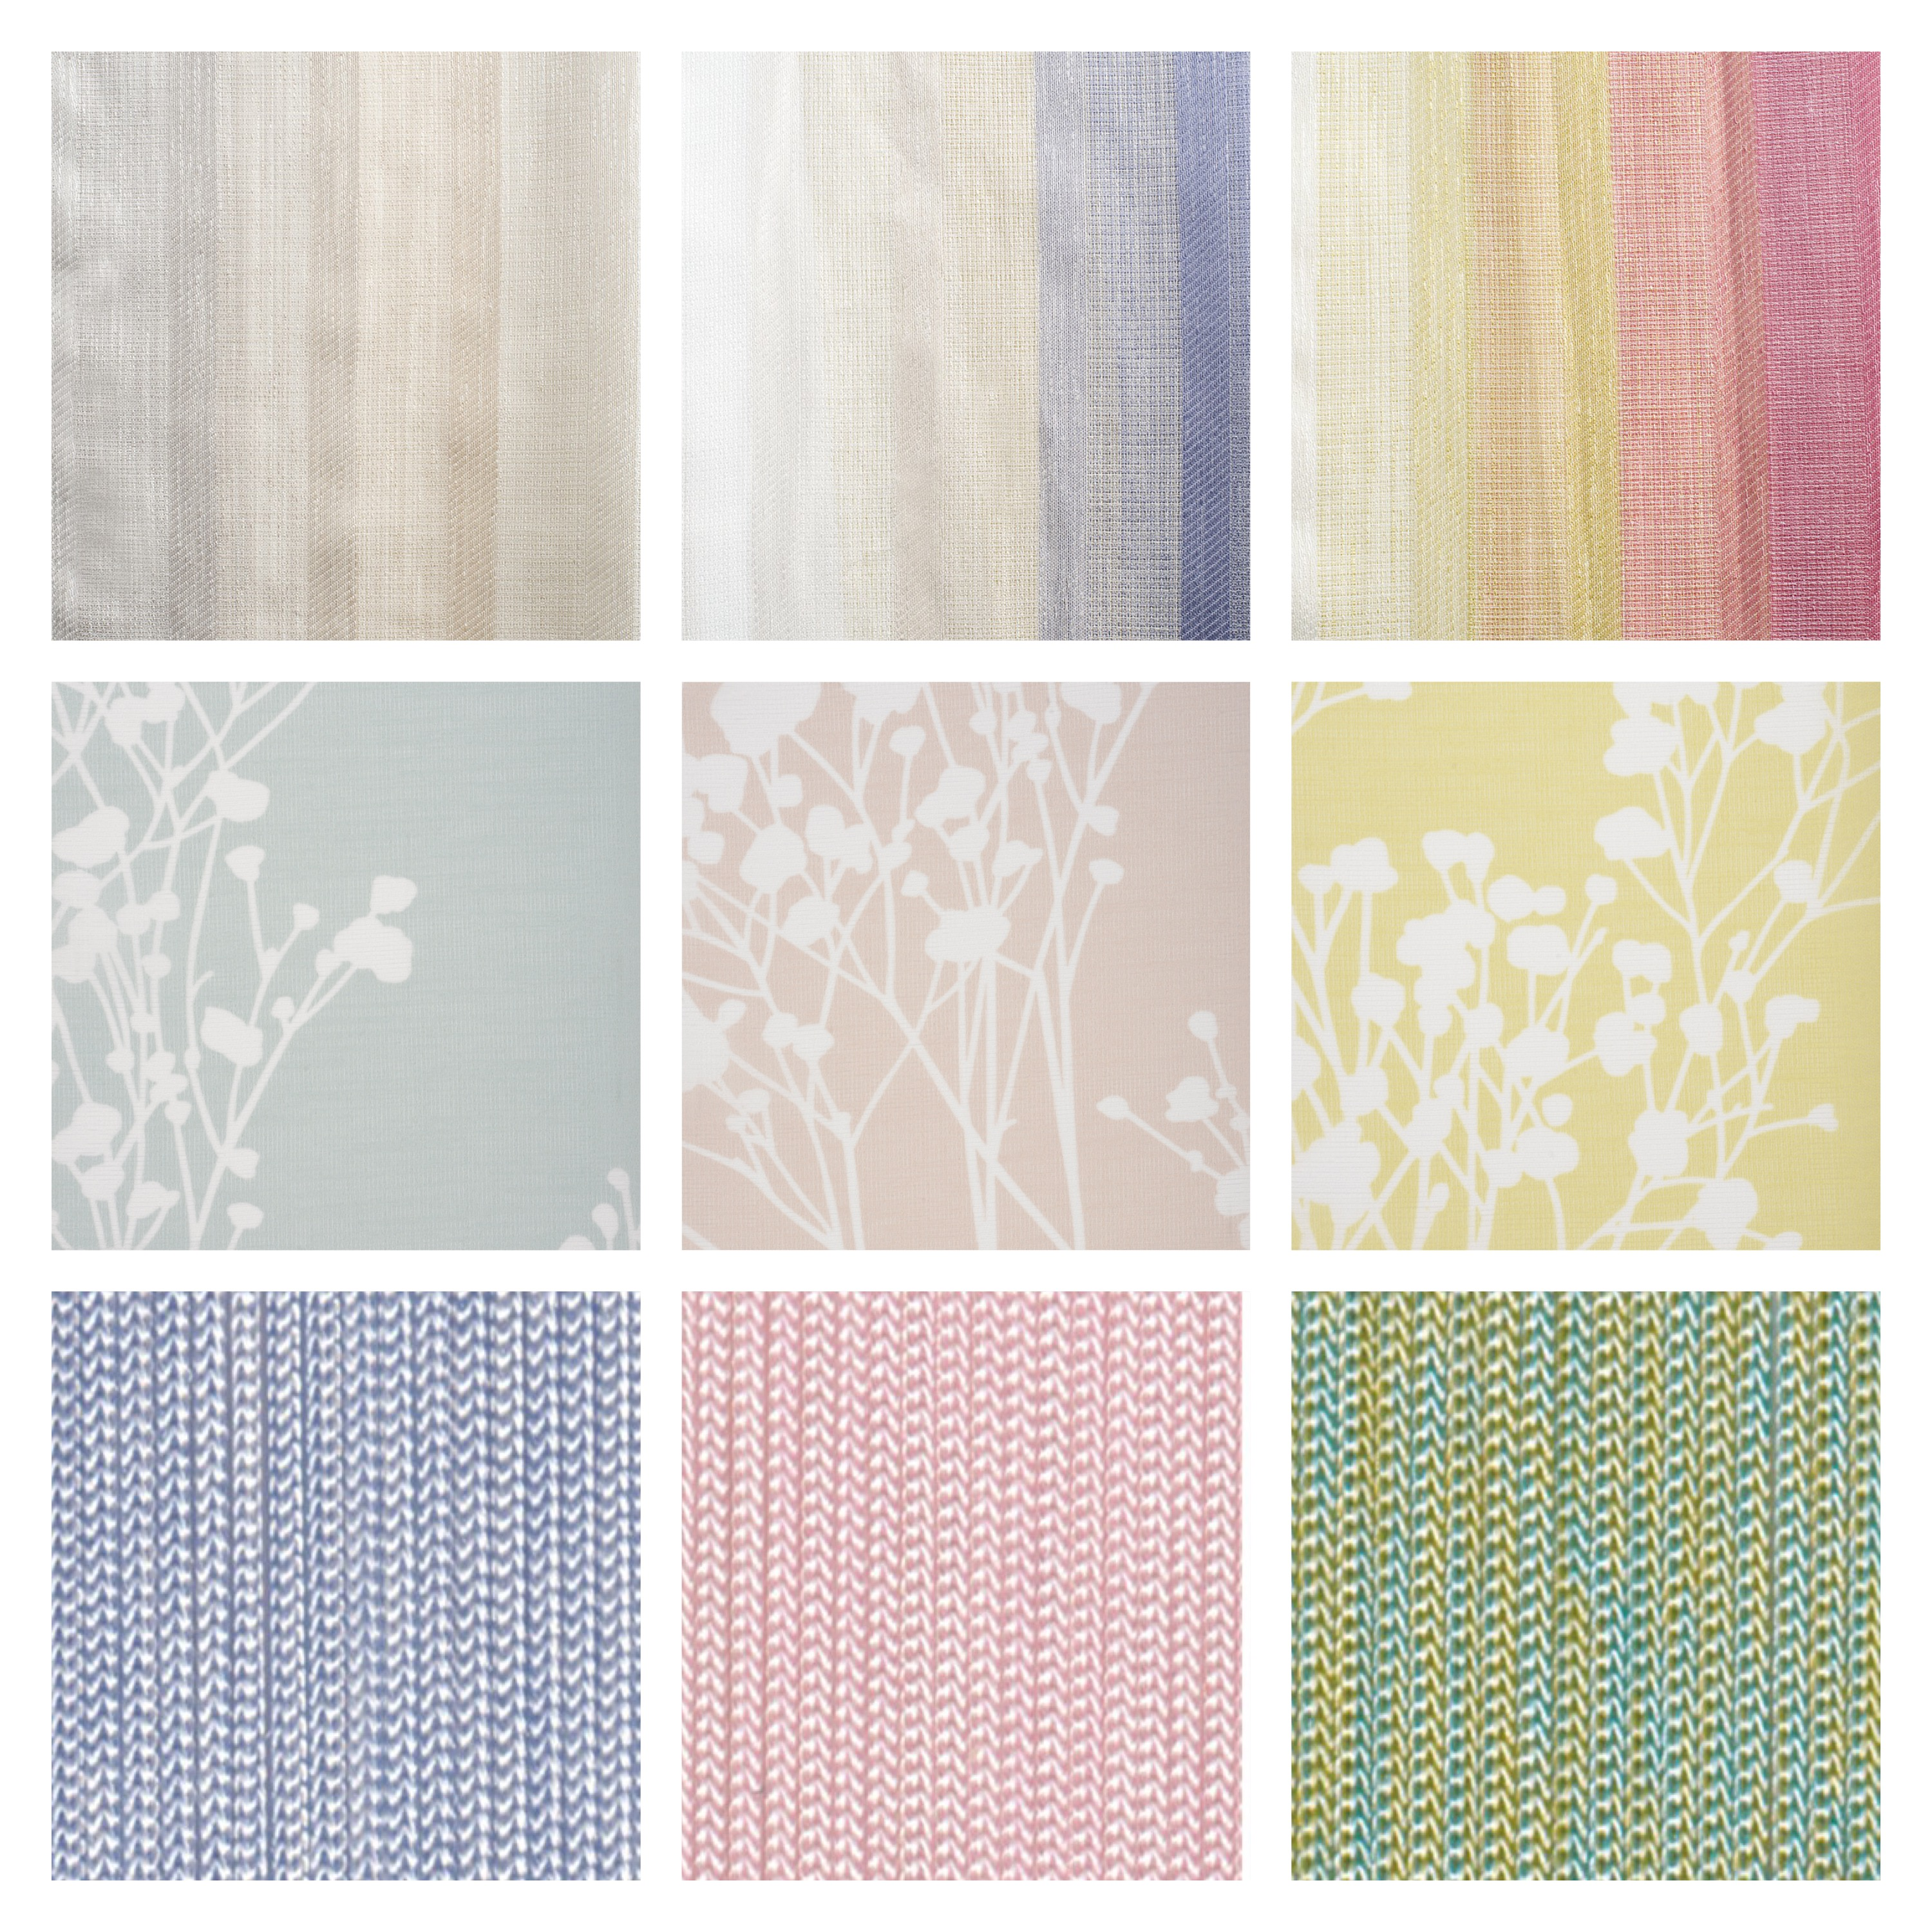 Top Row L-R The 'Liguria' collection Mid Row L-R The 'Summertime' collection Bottom Row L-R The 'Luxe String' collection